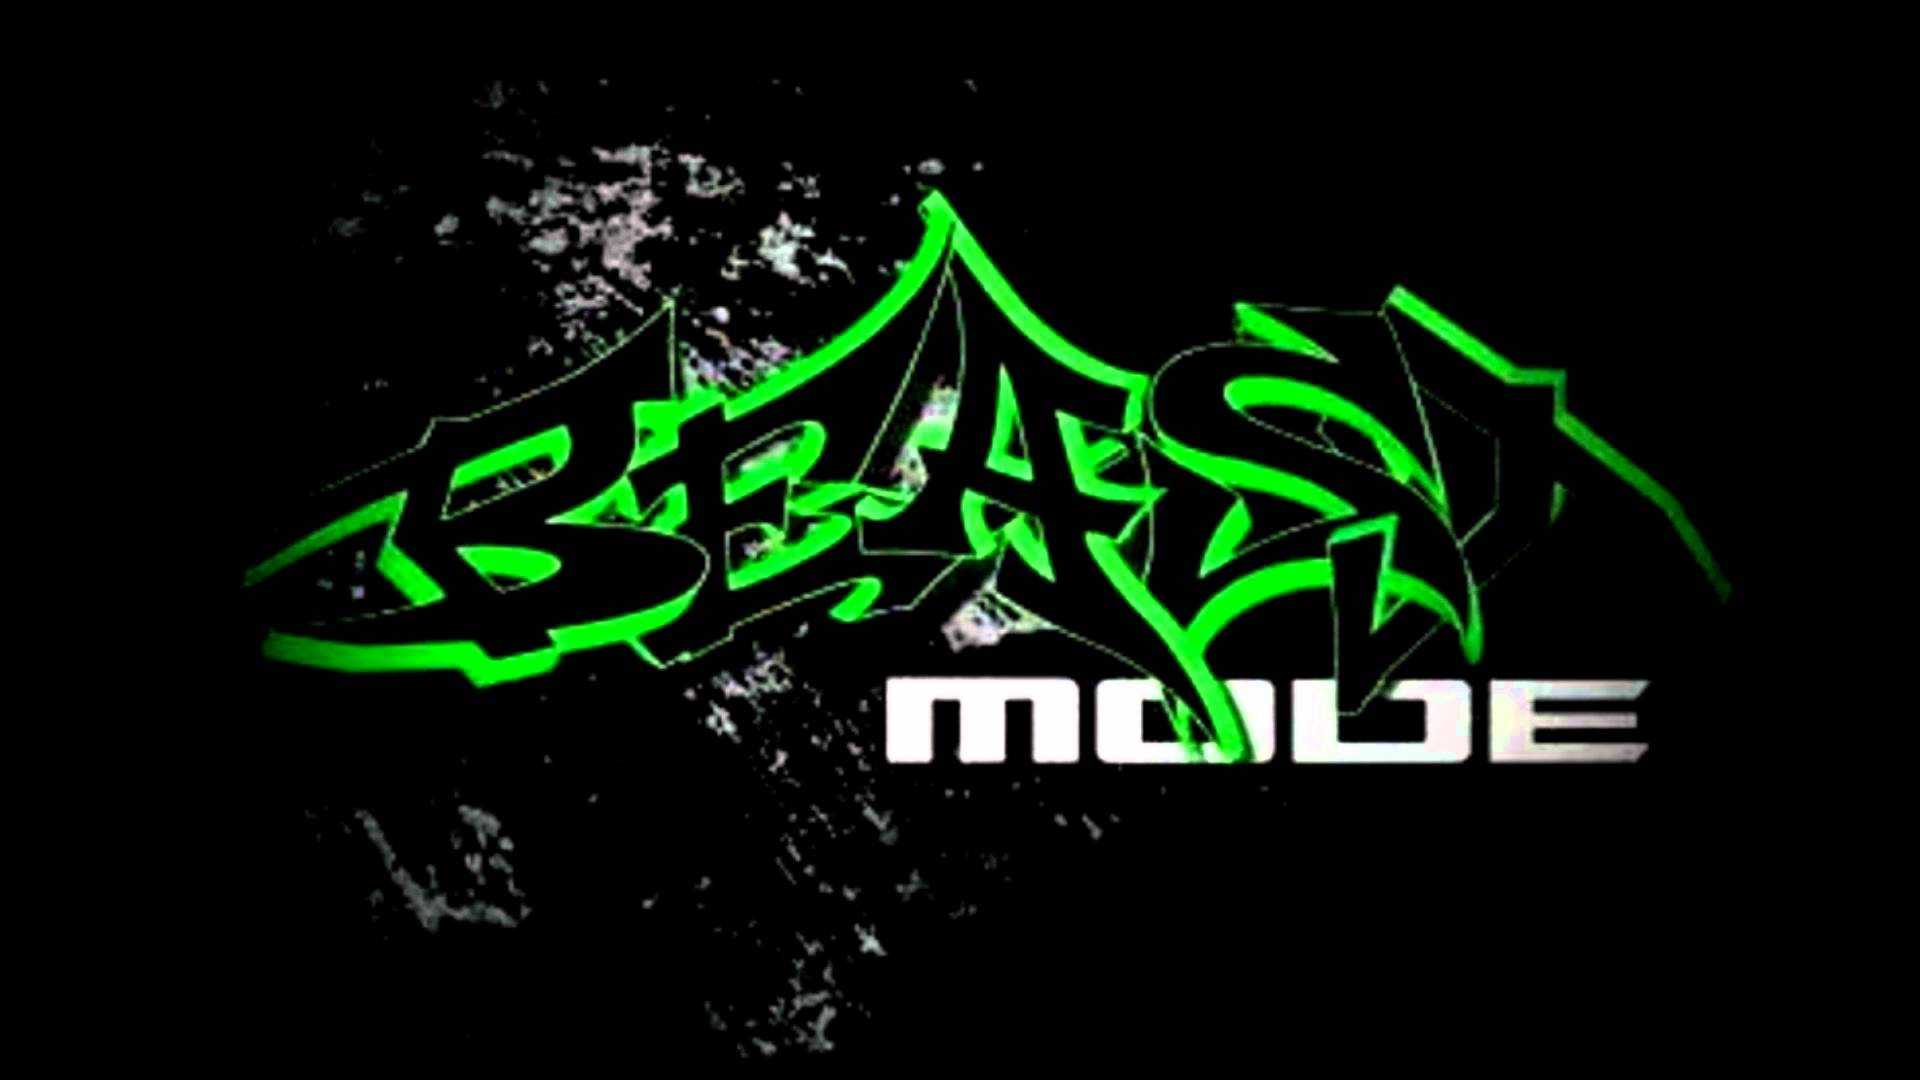 Best 58 Beast Mode Wallpaper on HipWallpaper Naruto Sage Mode 1920x1080